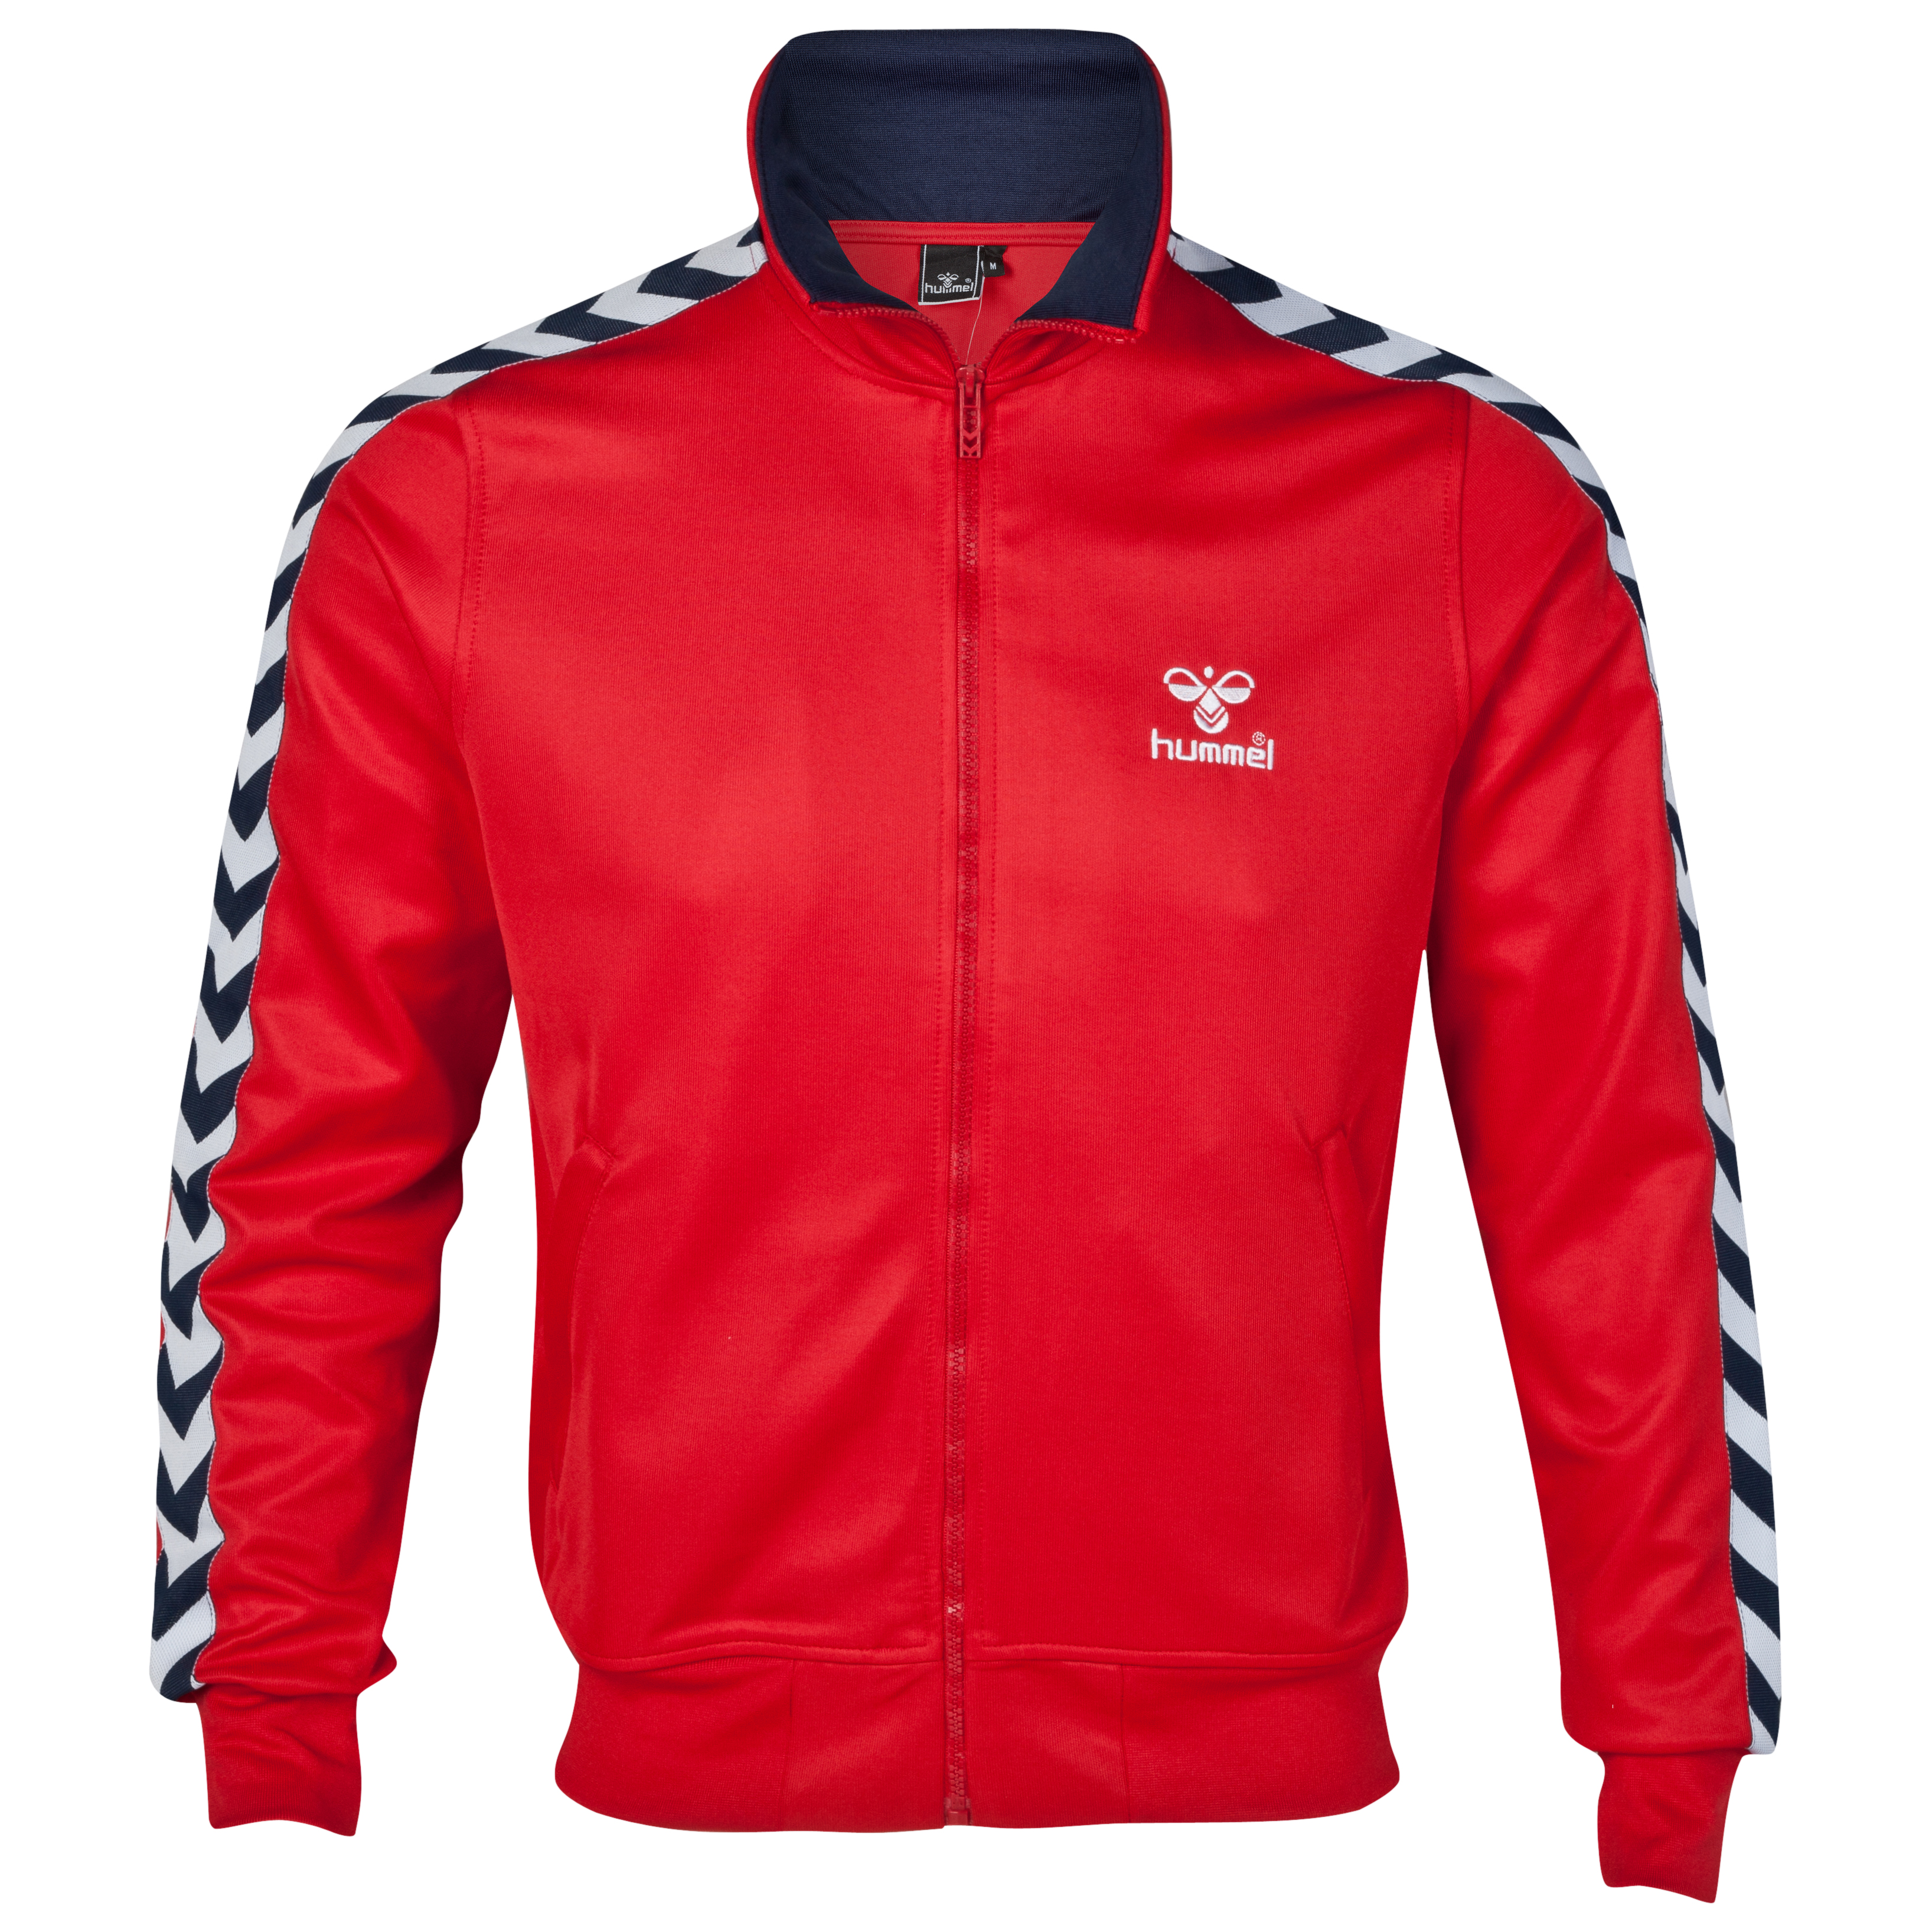 Hummel Atlantic Zip Track Jacket - Ribbon Red